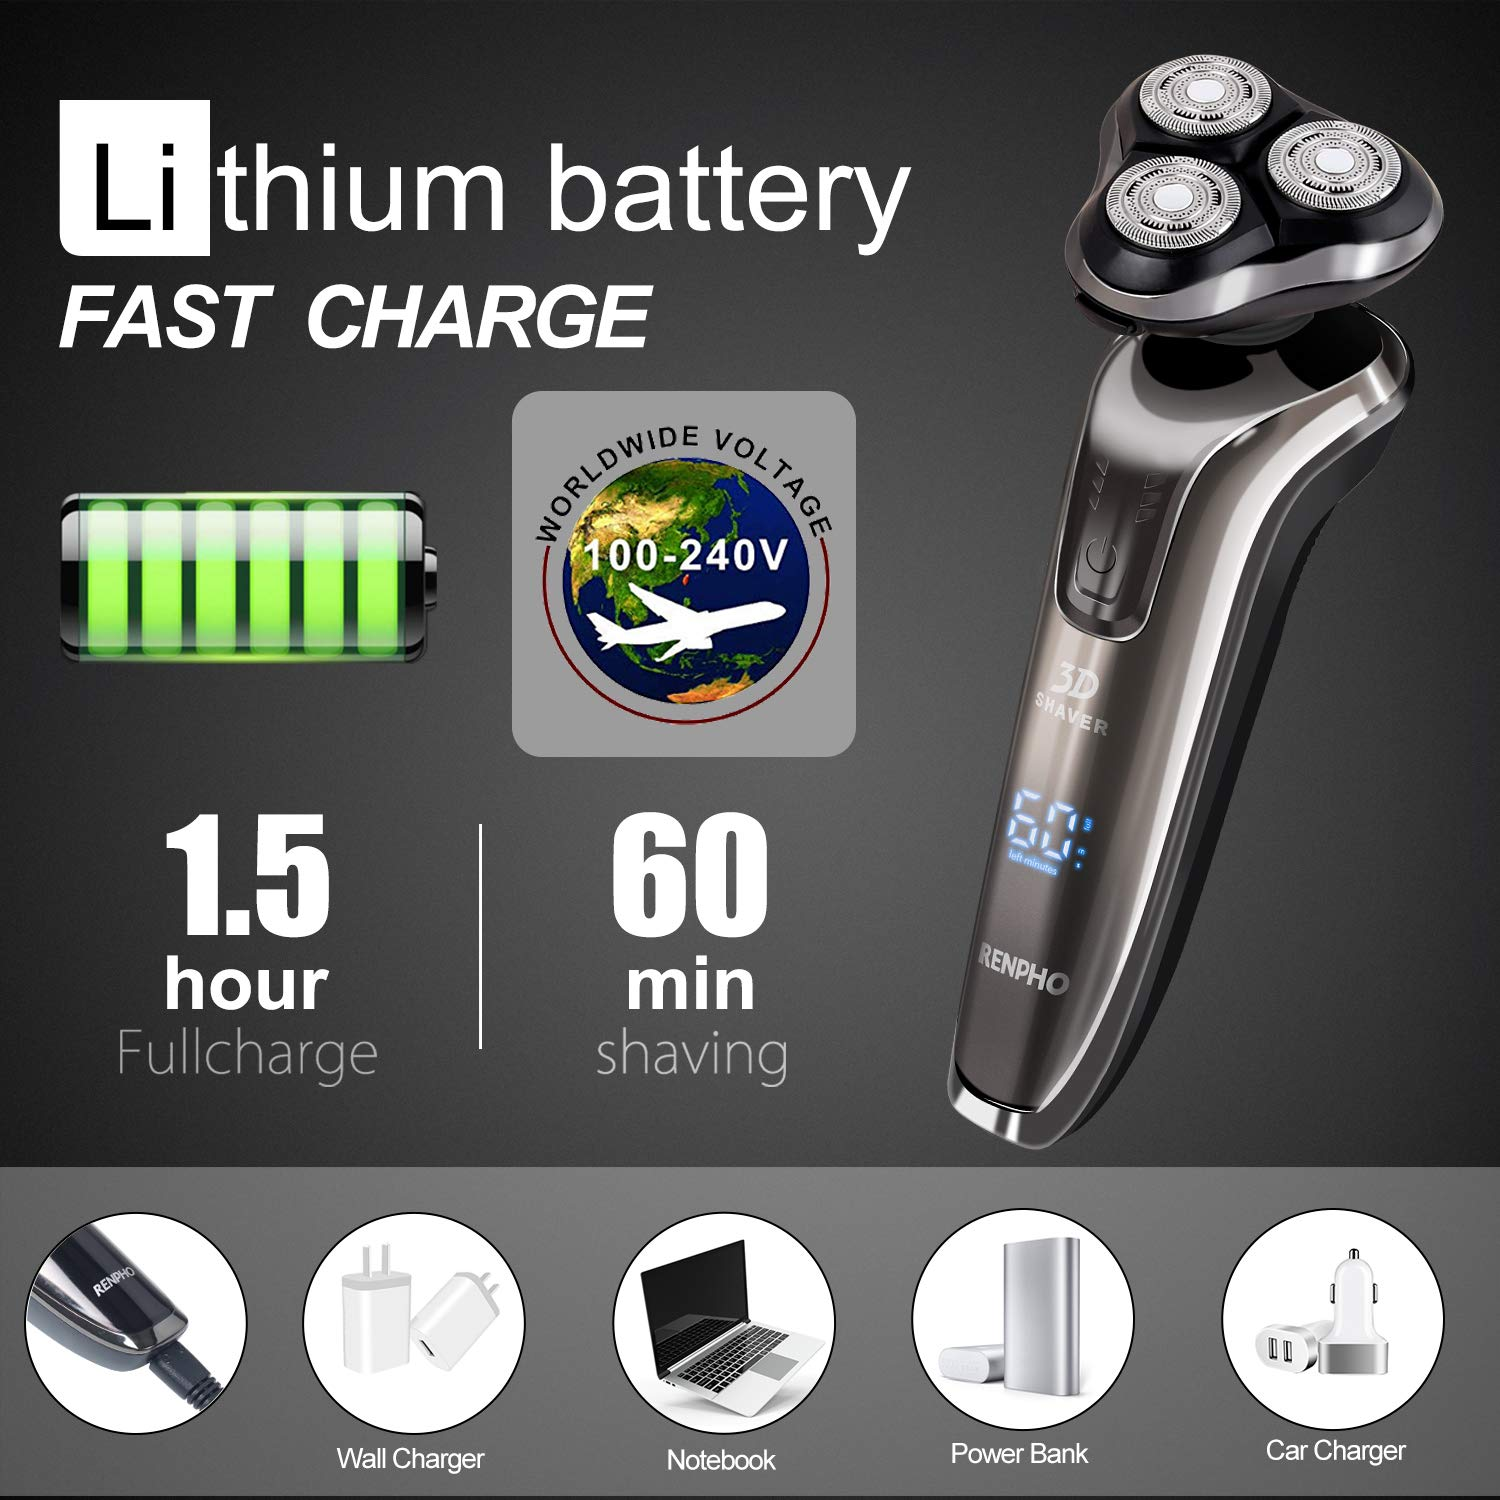 RENPHO Electric Rotary Razor Shaver for Men Wet & Dry Cordless Men's Rotary Shavers with Beard Trimmer Facial, LED Charge Indicator & Travel Lock USB Rechargeable